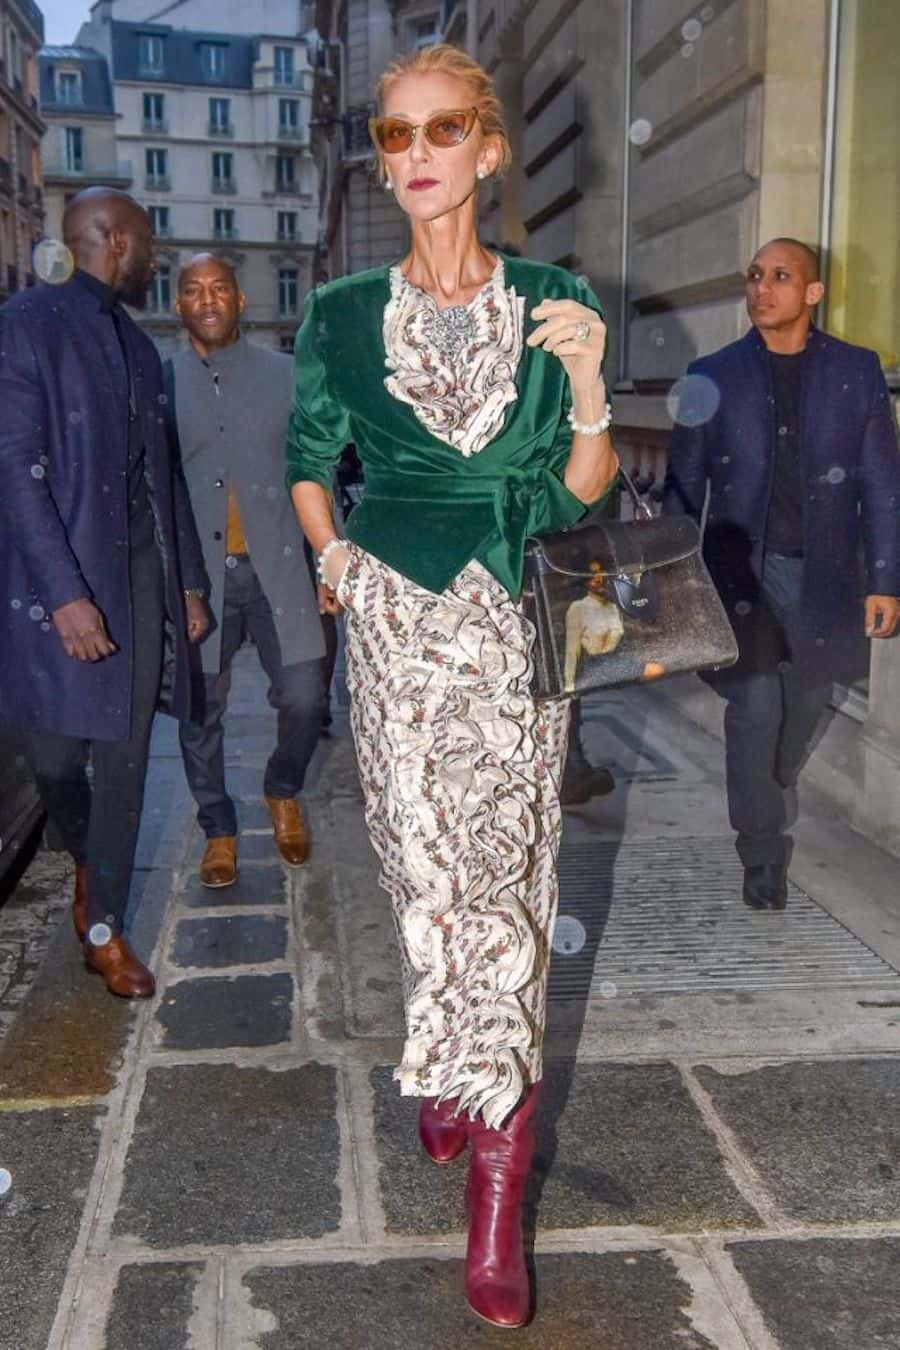 Celine Dion Weight Loss Reason Revealed As Ballet After Paris